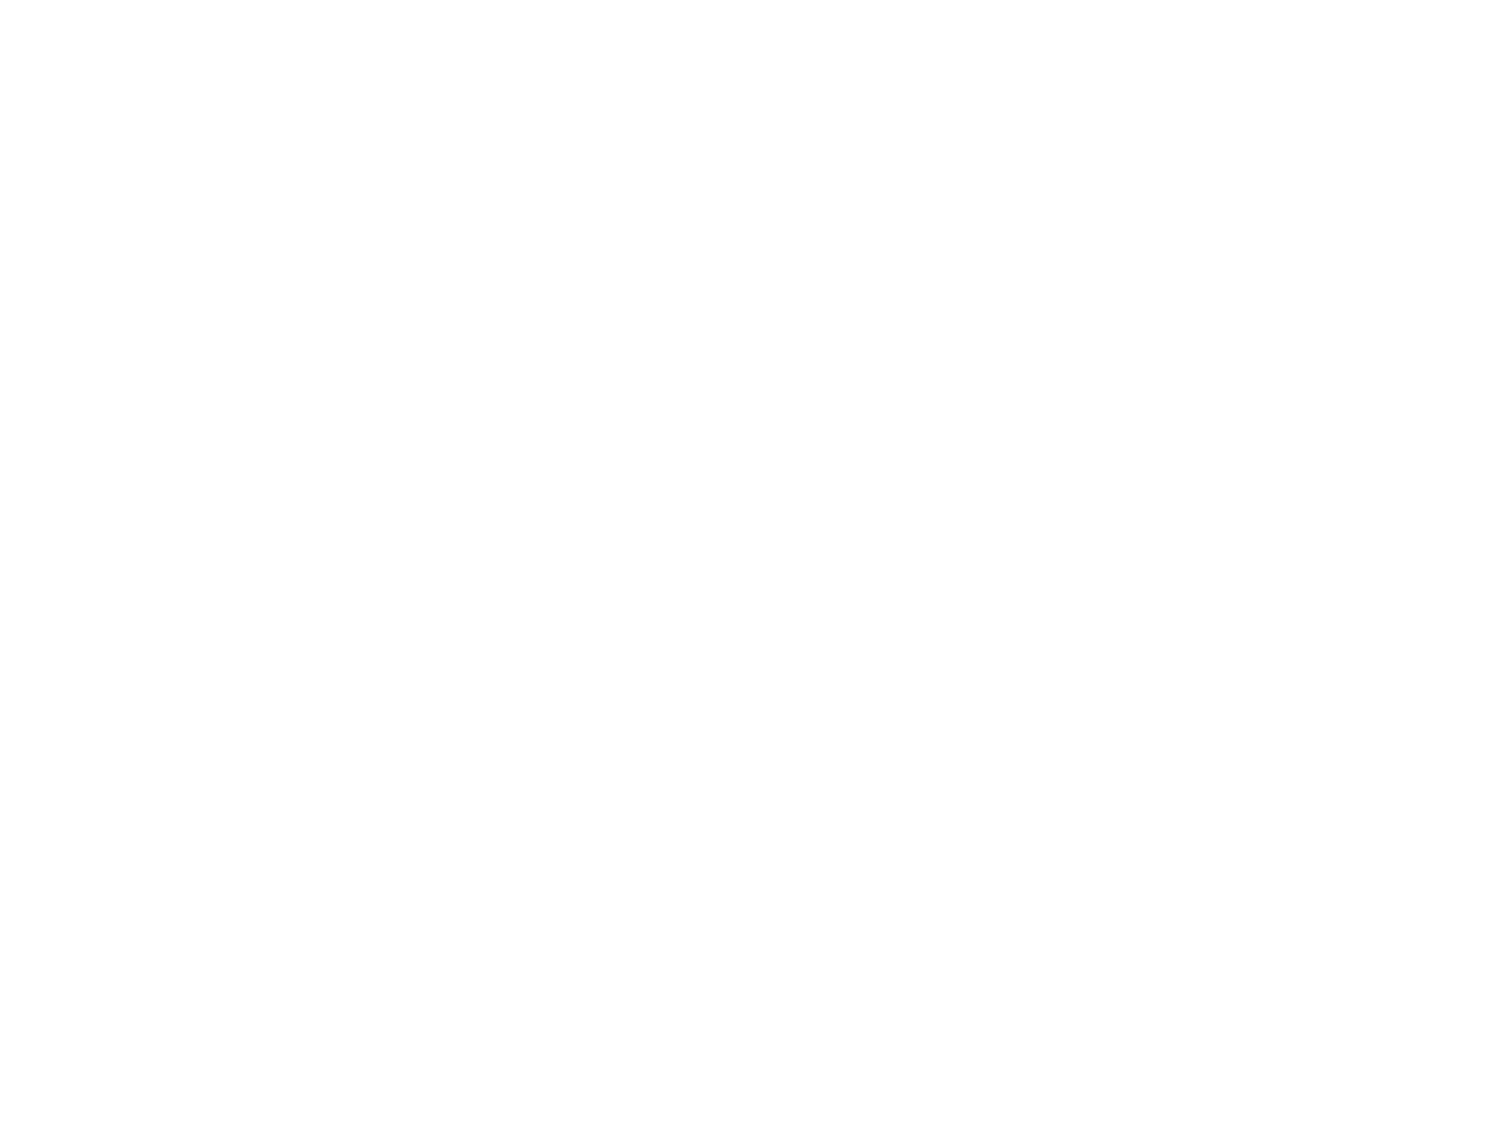 Milton and Hyde